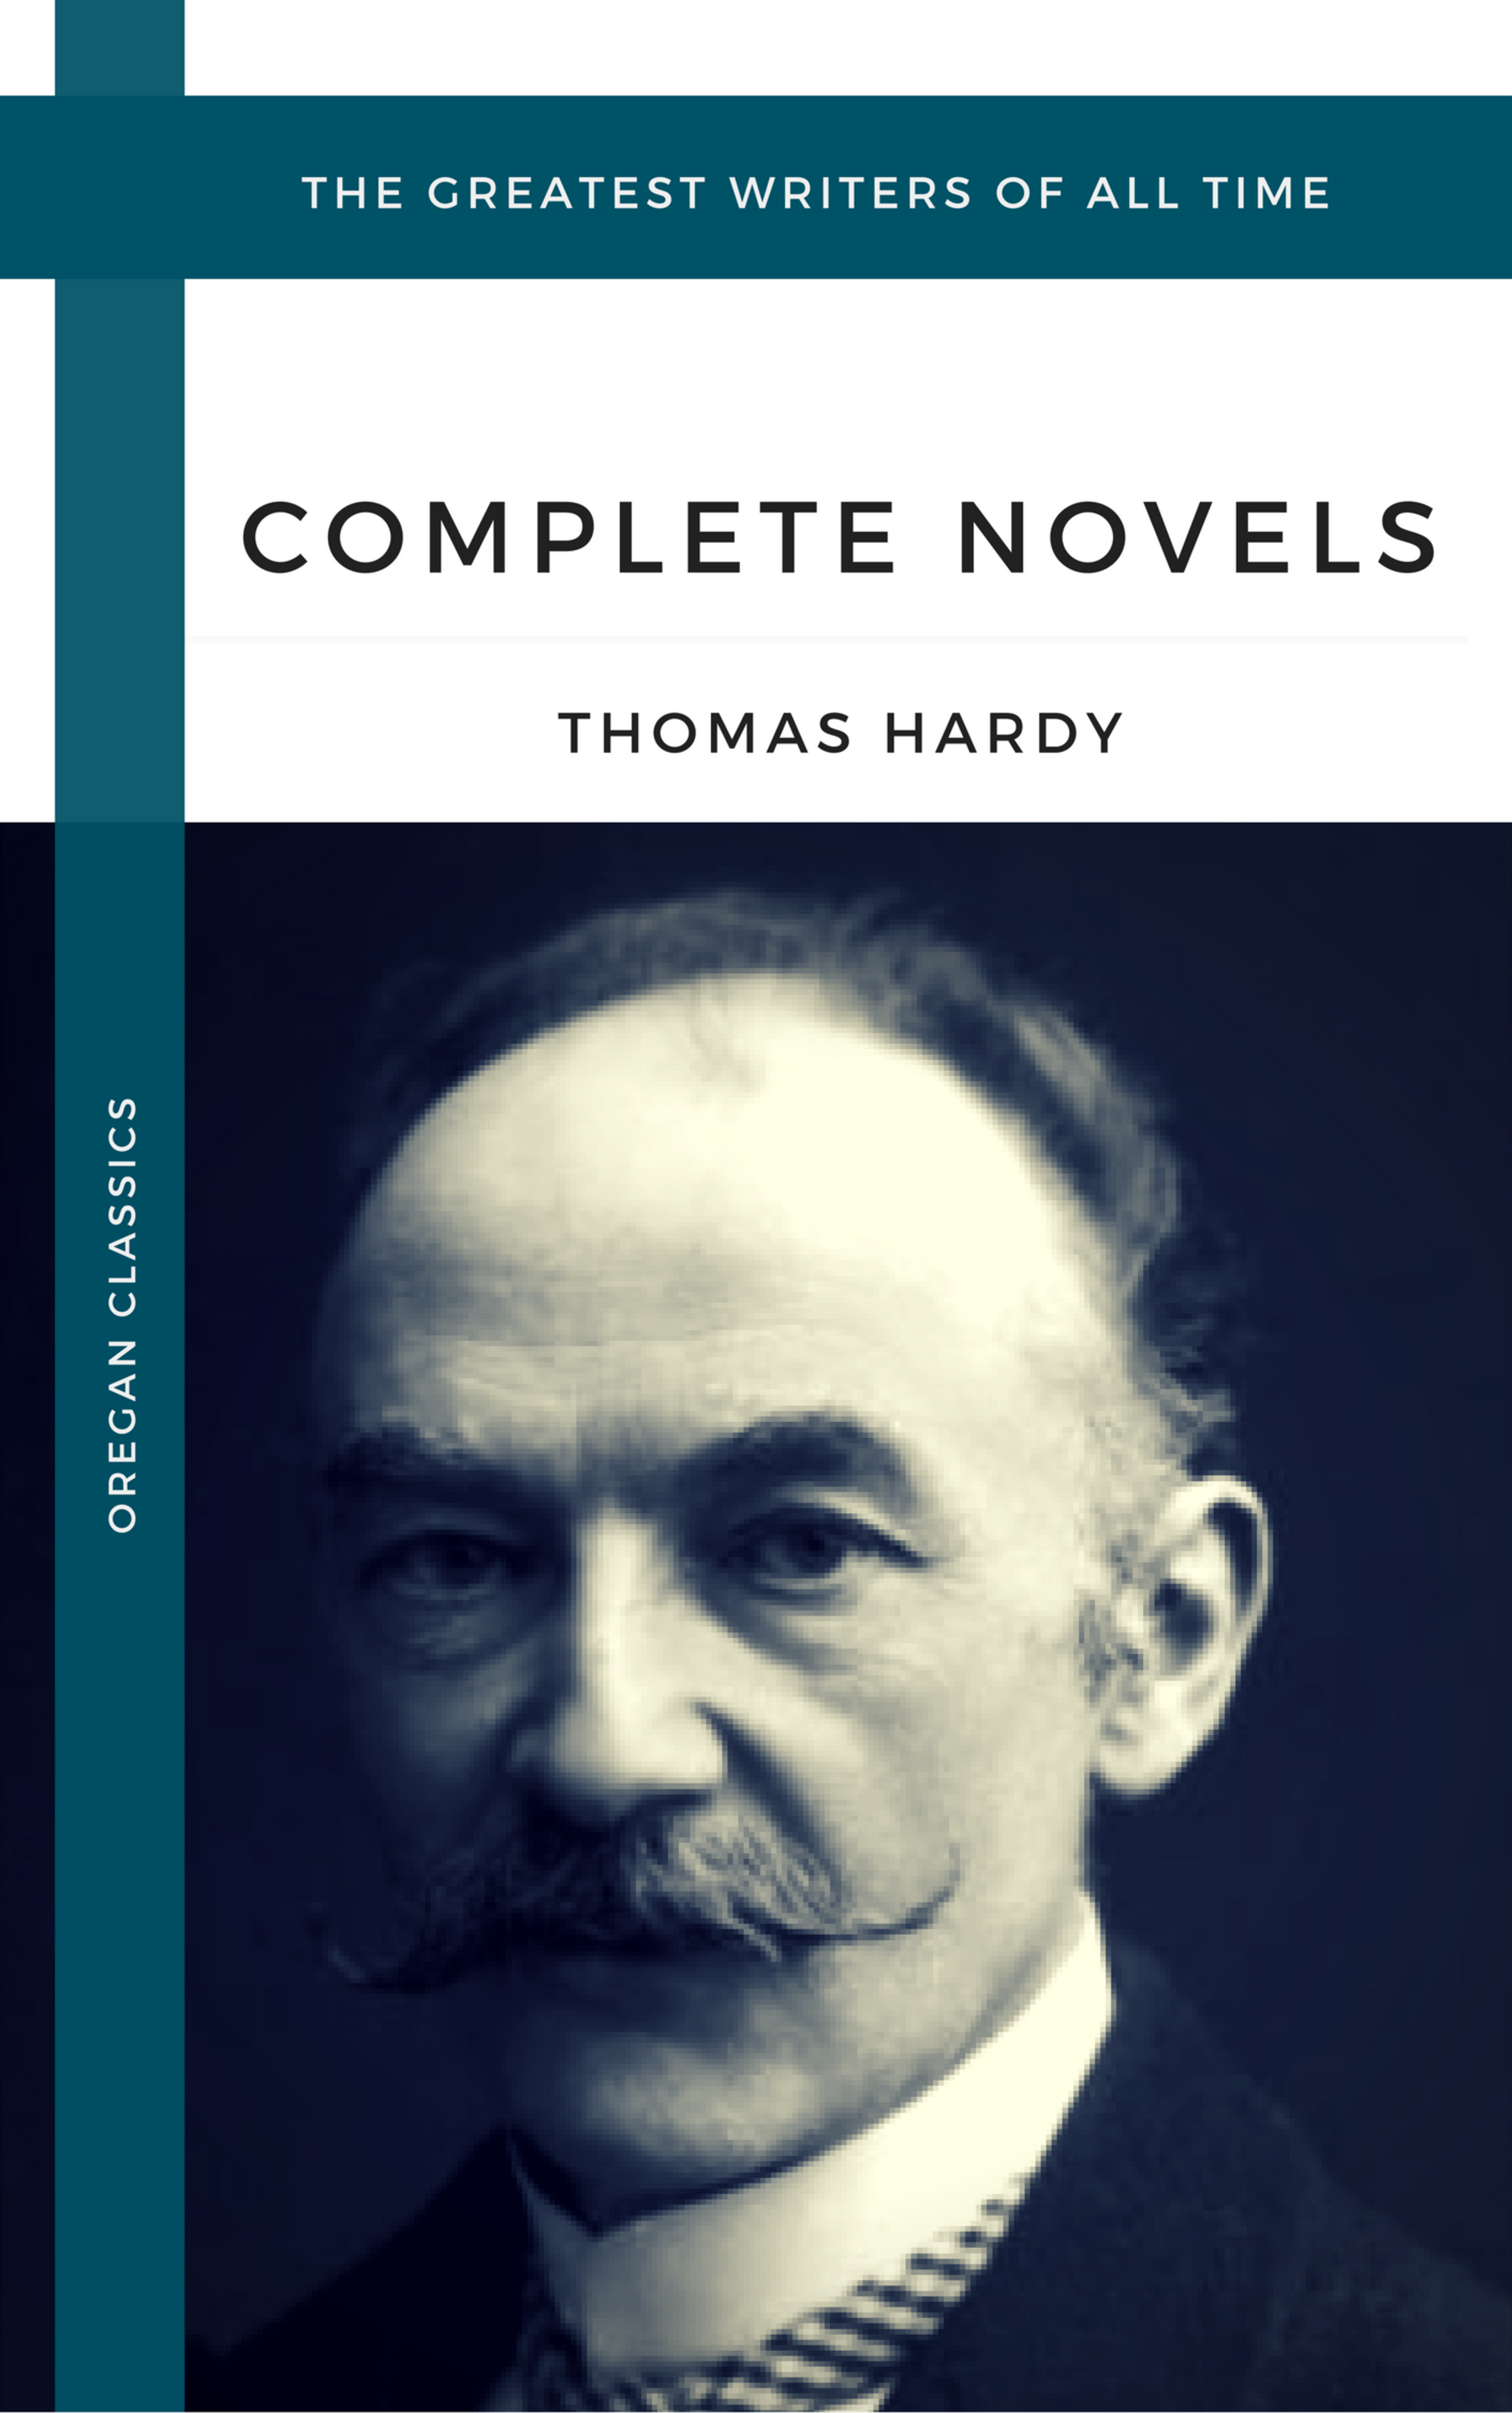 hardy thomas the complete novels oregan classics the greatest writers of all time